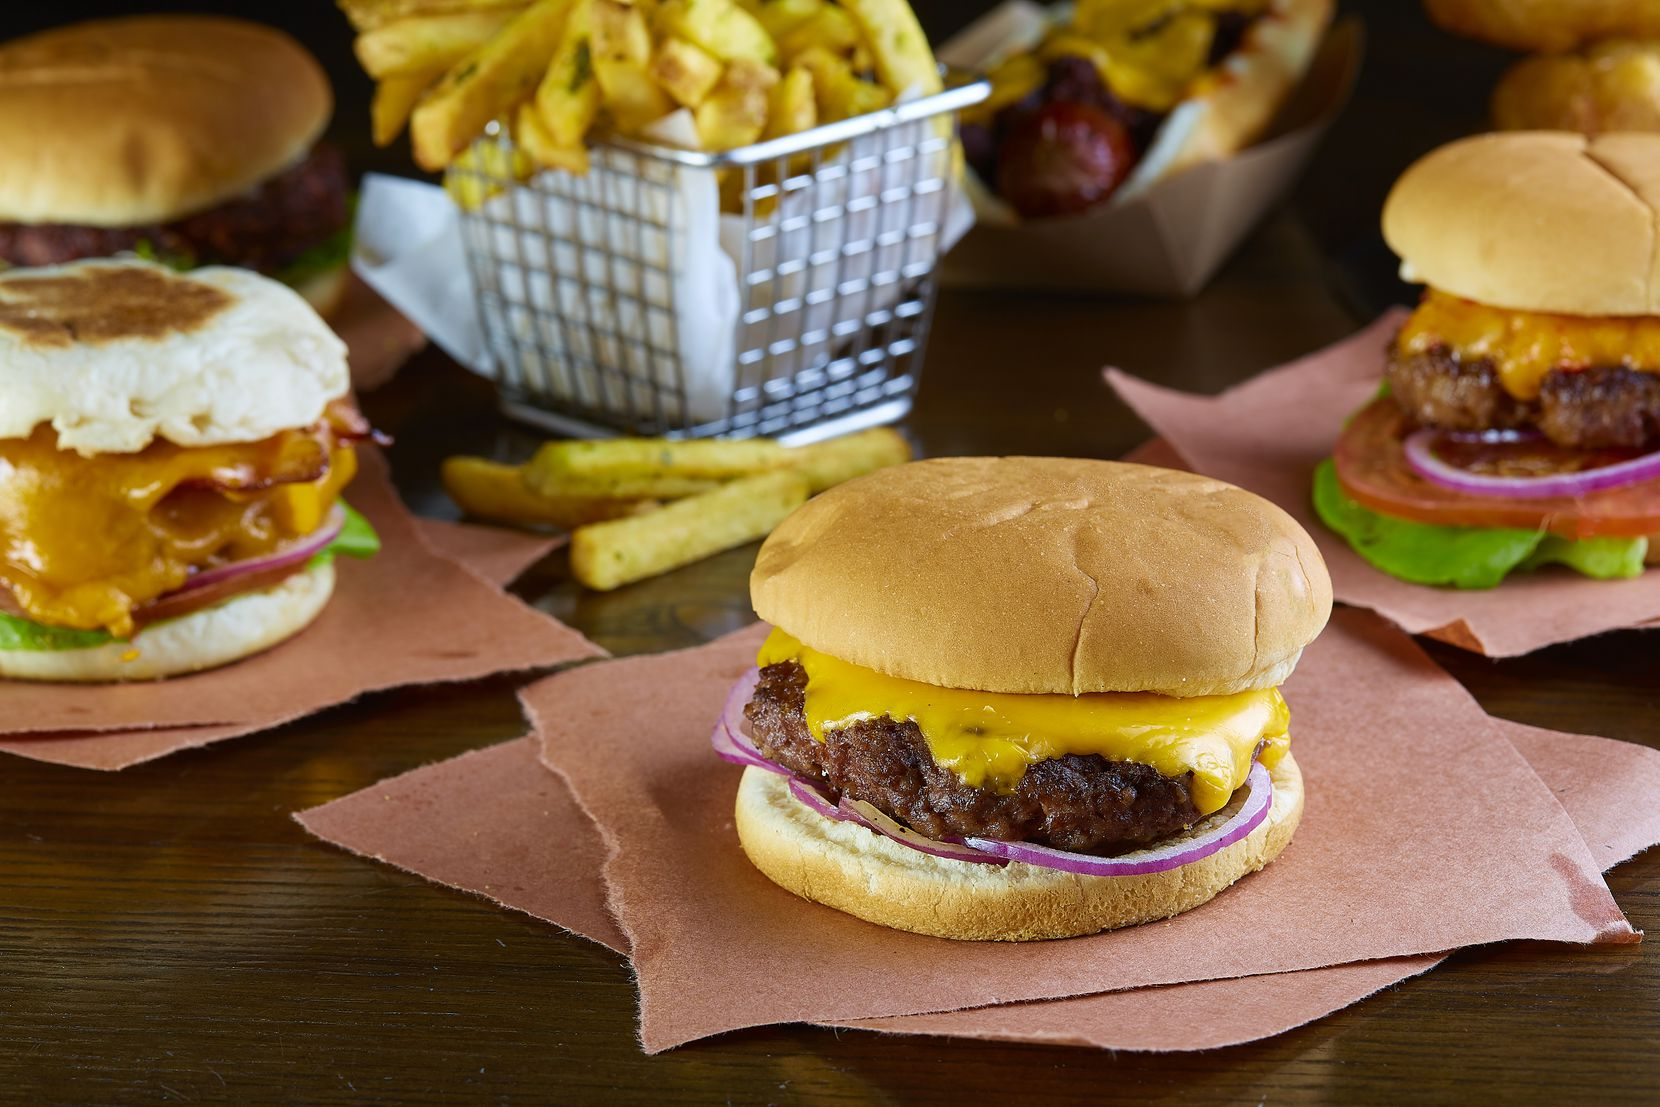 Knife Dallas now offers its gourmet burgers and aged steaks for takeout. The full takeout menu is available Sundays through Wednesdays.